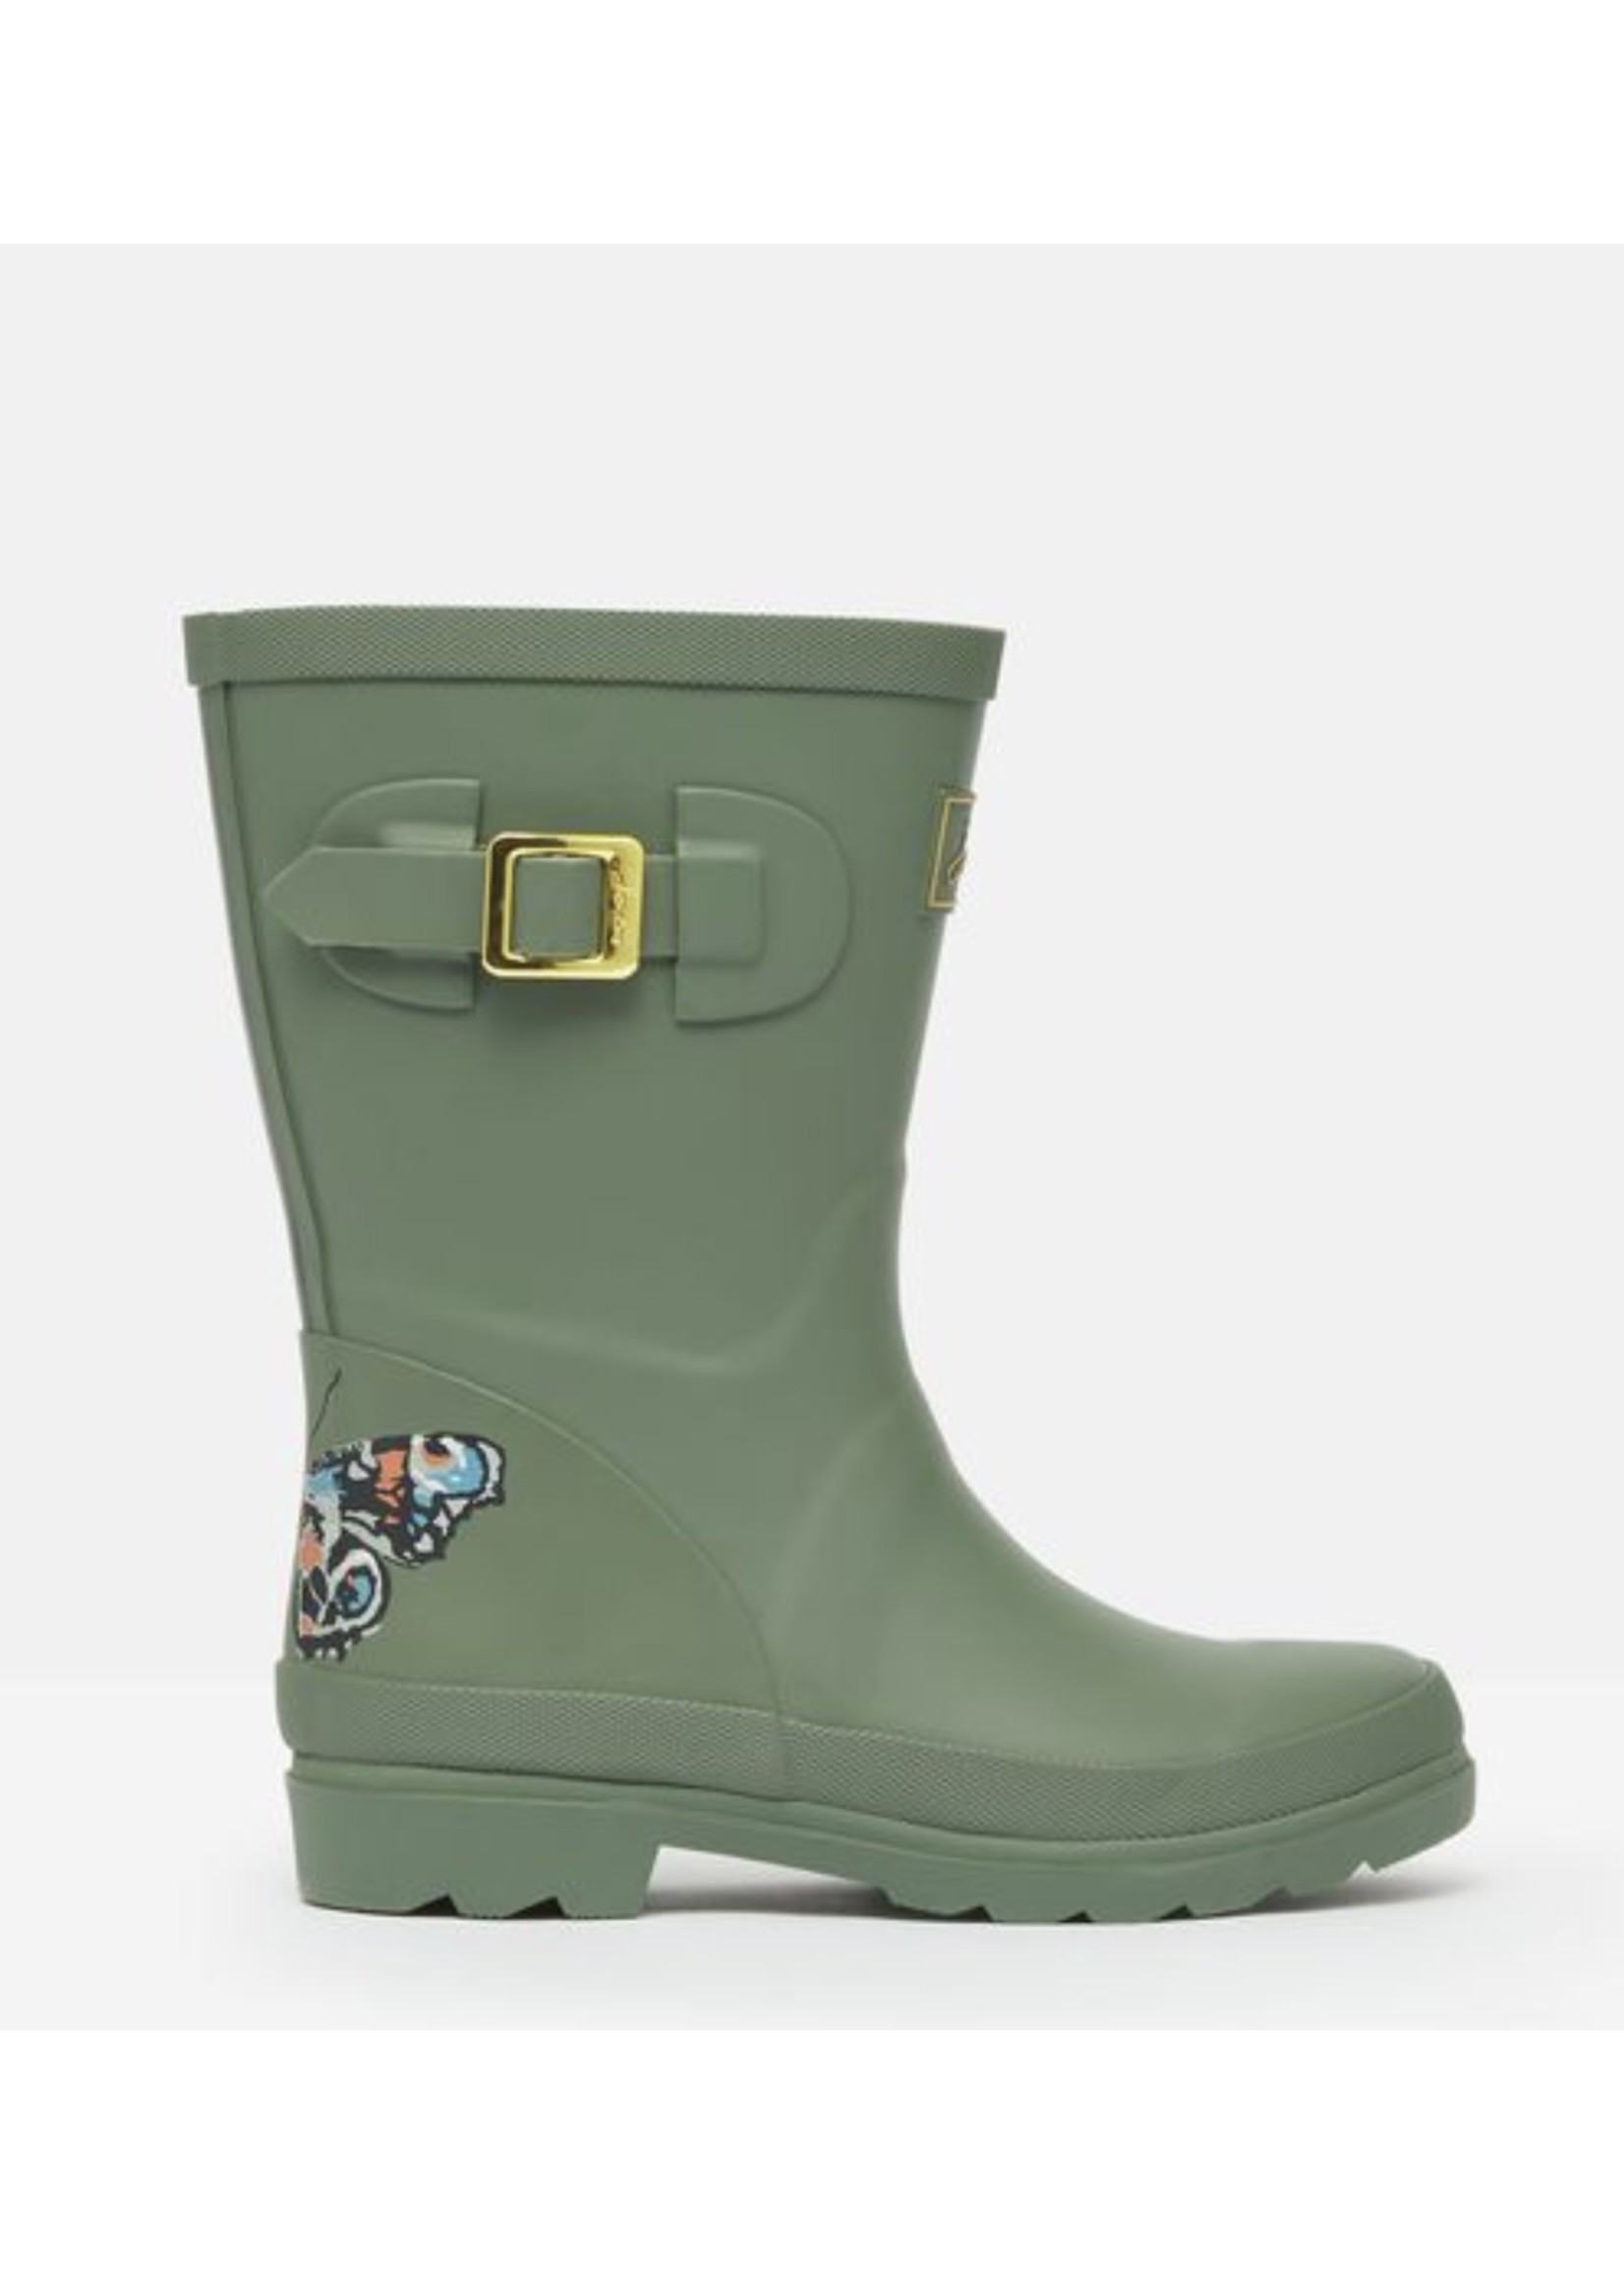 Joules Joules Tall Wellie